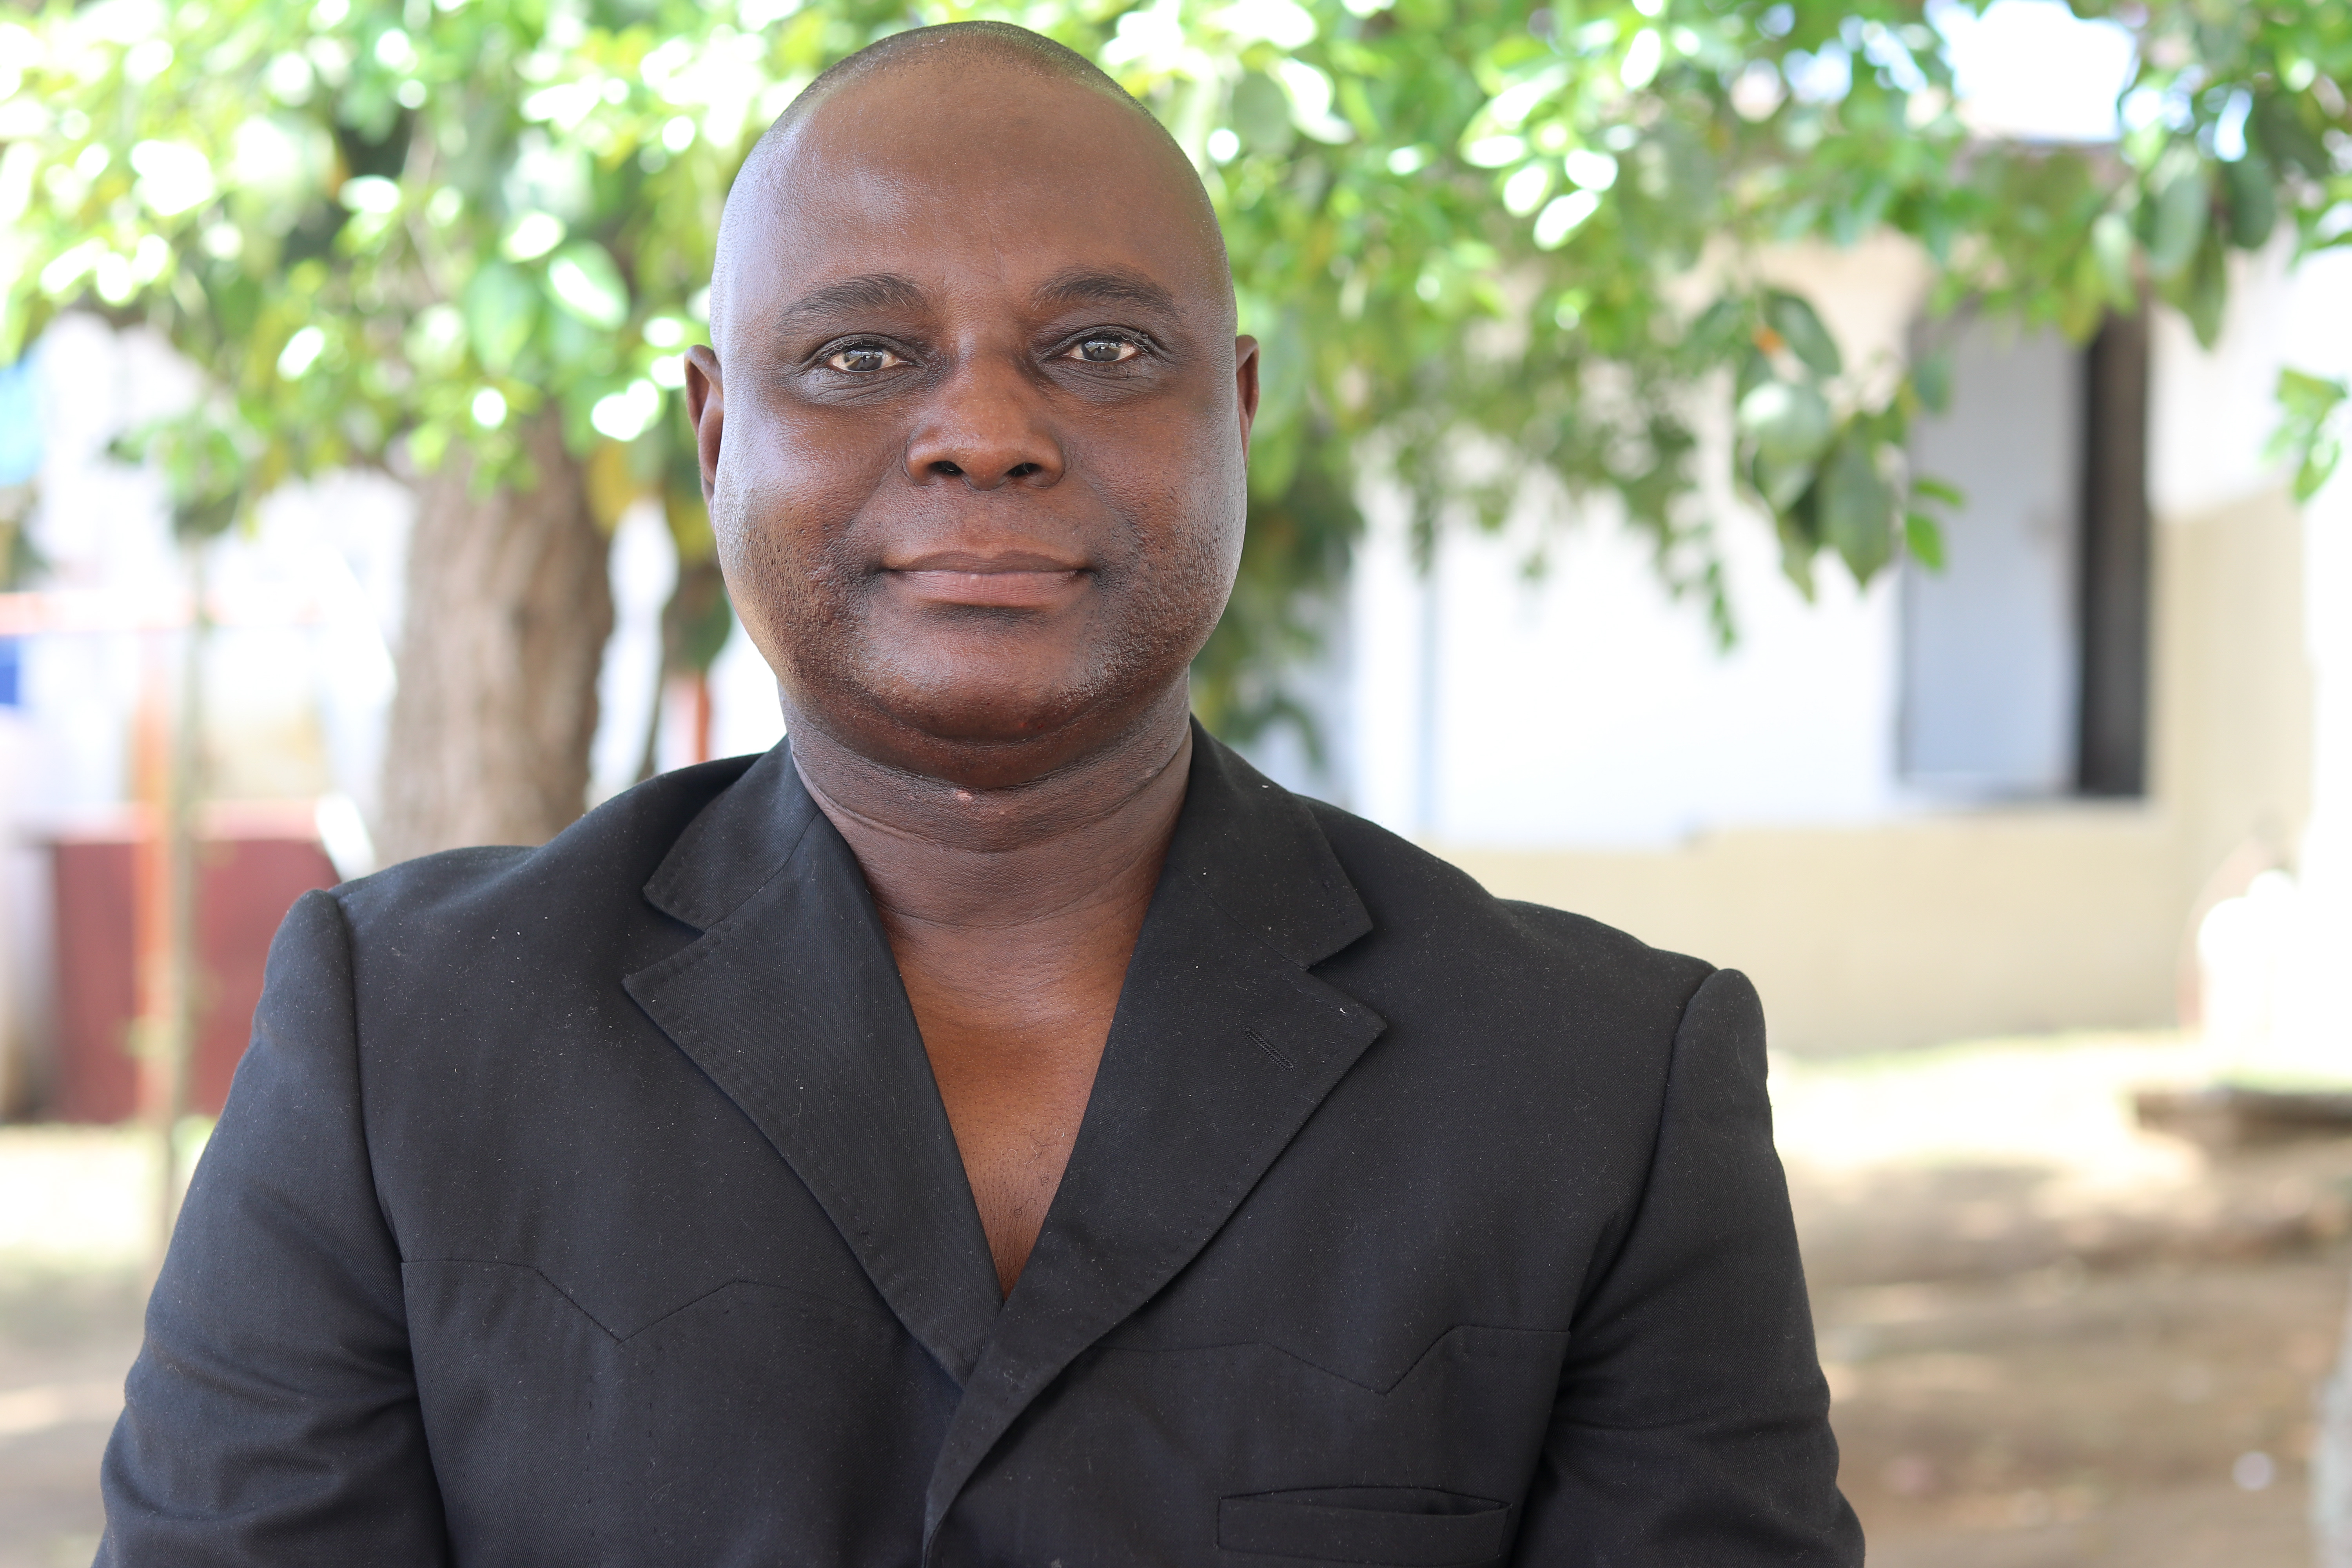 Q&A with Augustine Allieu, National Director of SOS Children's Villages Liberia